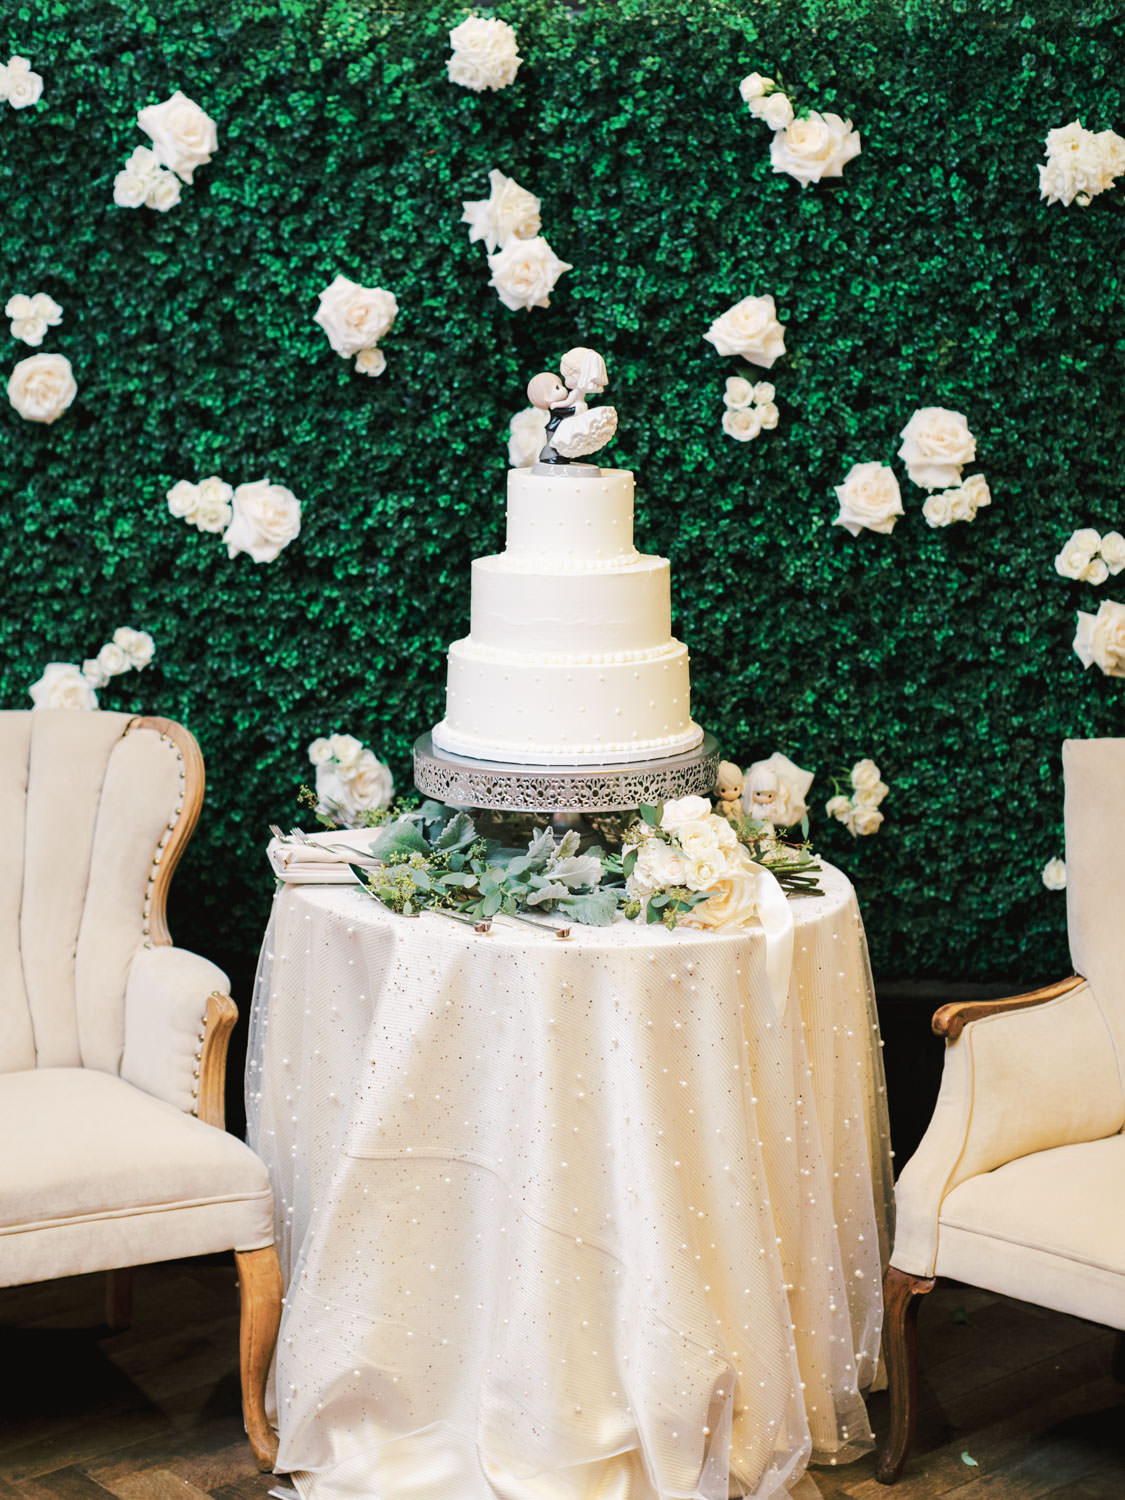 Ivory pearl linen on a cake table. three tier ivory buttercream cake topped with porcelain doll figurine in front of a greenery hedge backdrop. Estancia La Jolla Grande Room reception by Cavin Elizabeth Photography